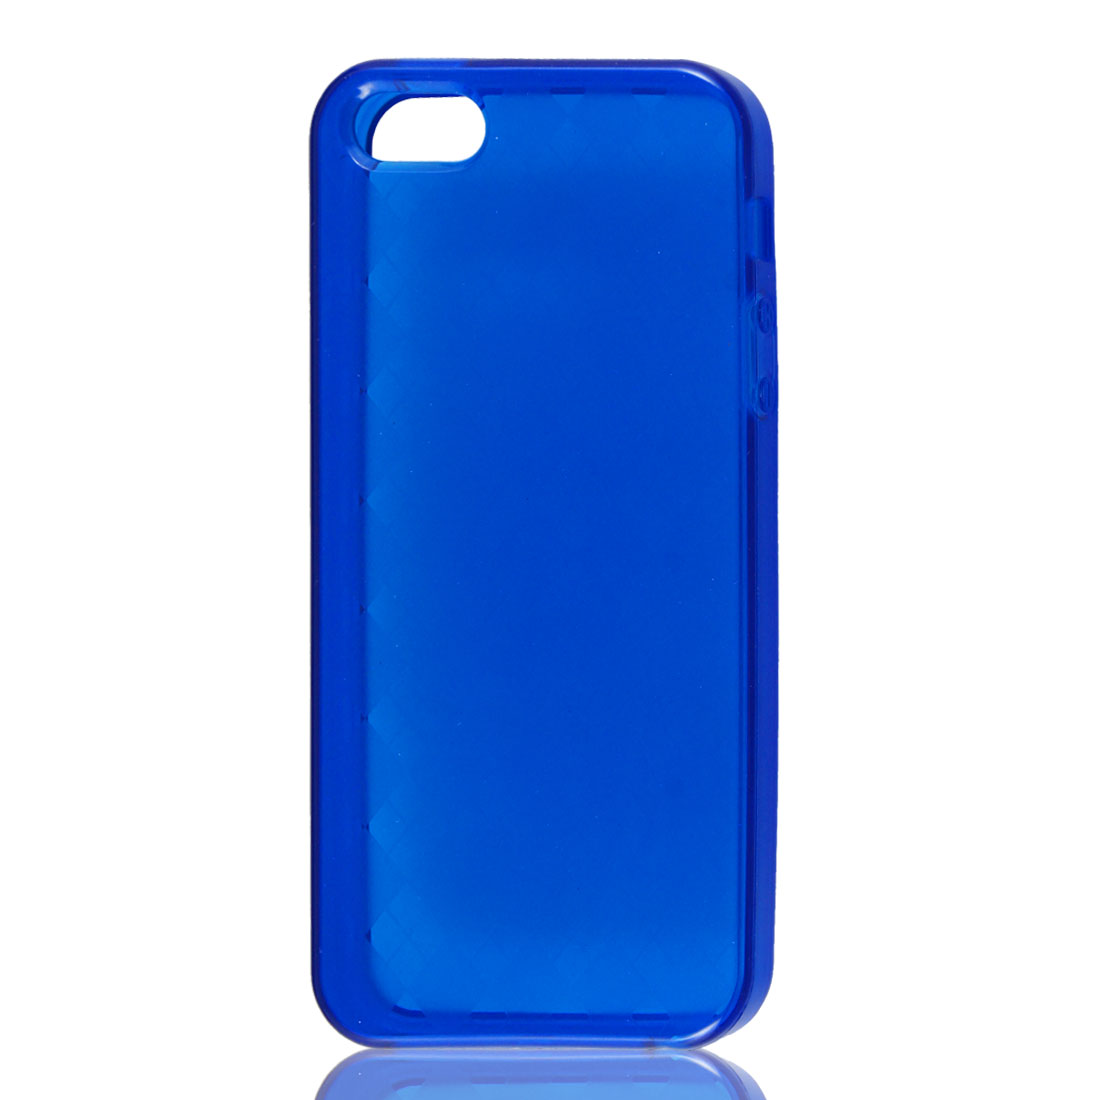 Clear Blue Argyle Pattern Soft Plastic TPU Case Cover for iPhone 5 5G